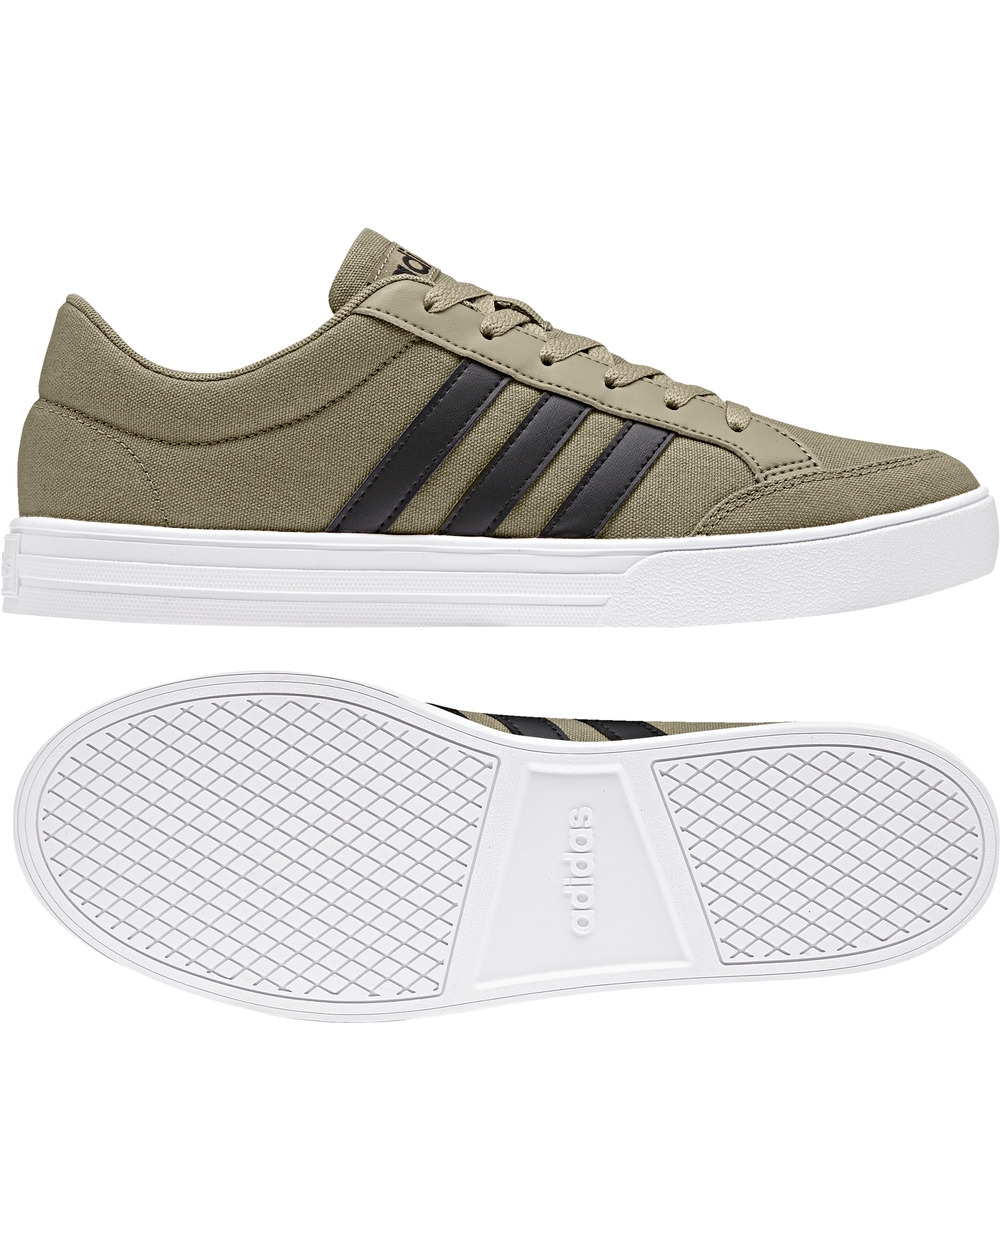 8 di 9 Adidas Scarpe Sneakers Trainers Sportive Ginnastica Tennis VS SET canvas Verde